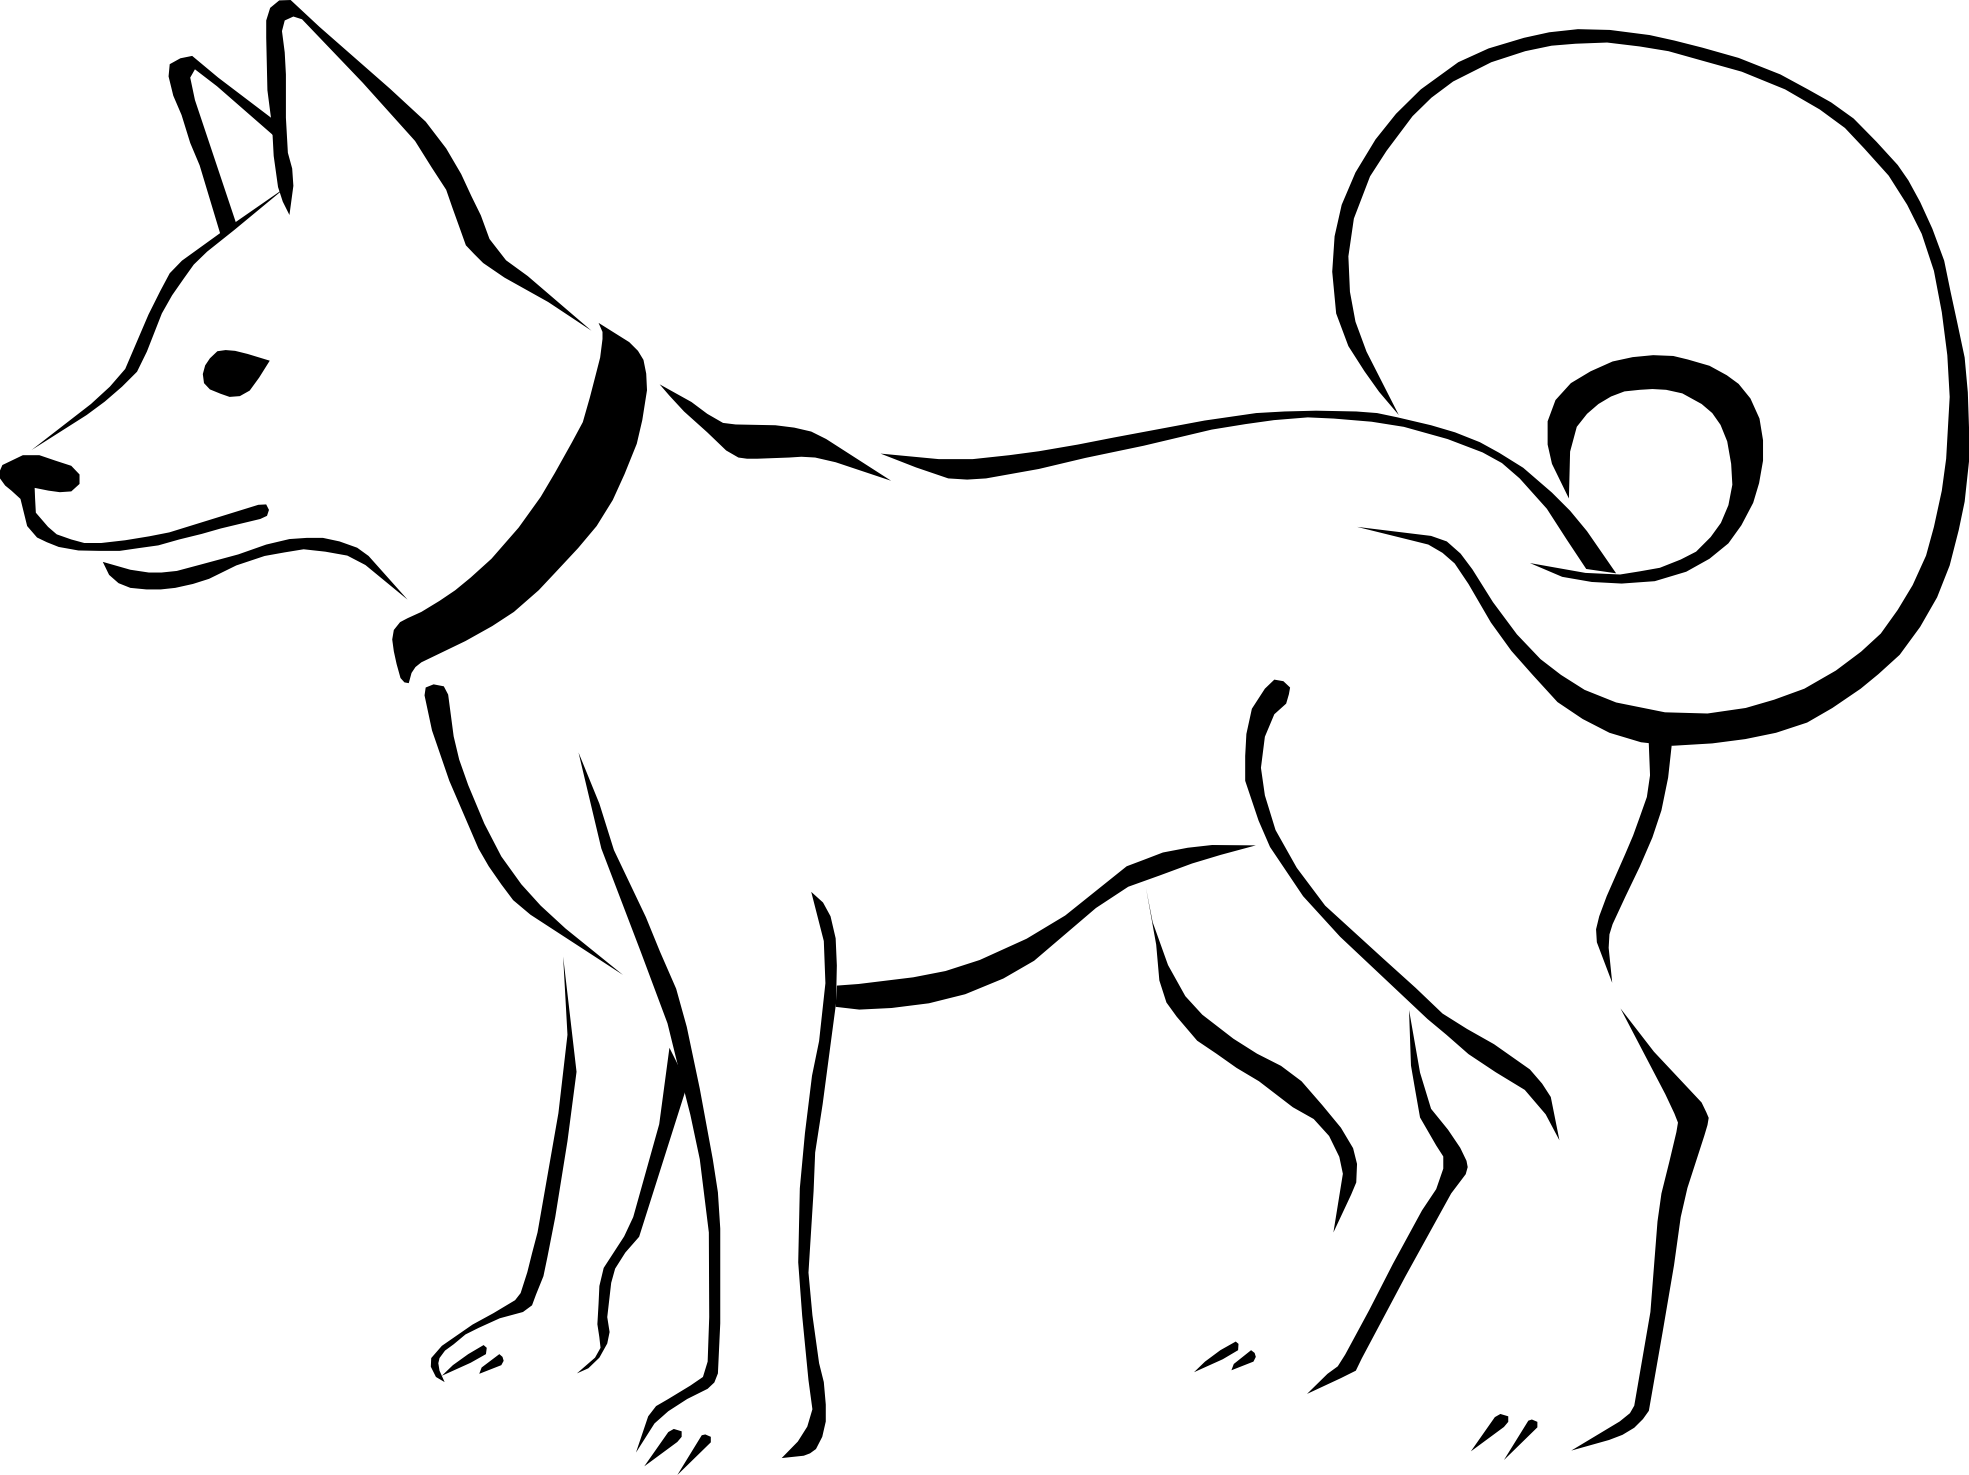 Dog clipart images svg royalty free White dog clipart png - ClipartFest svg royalty free